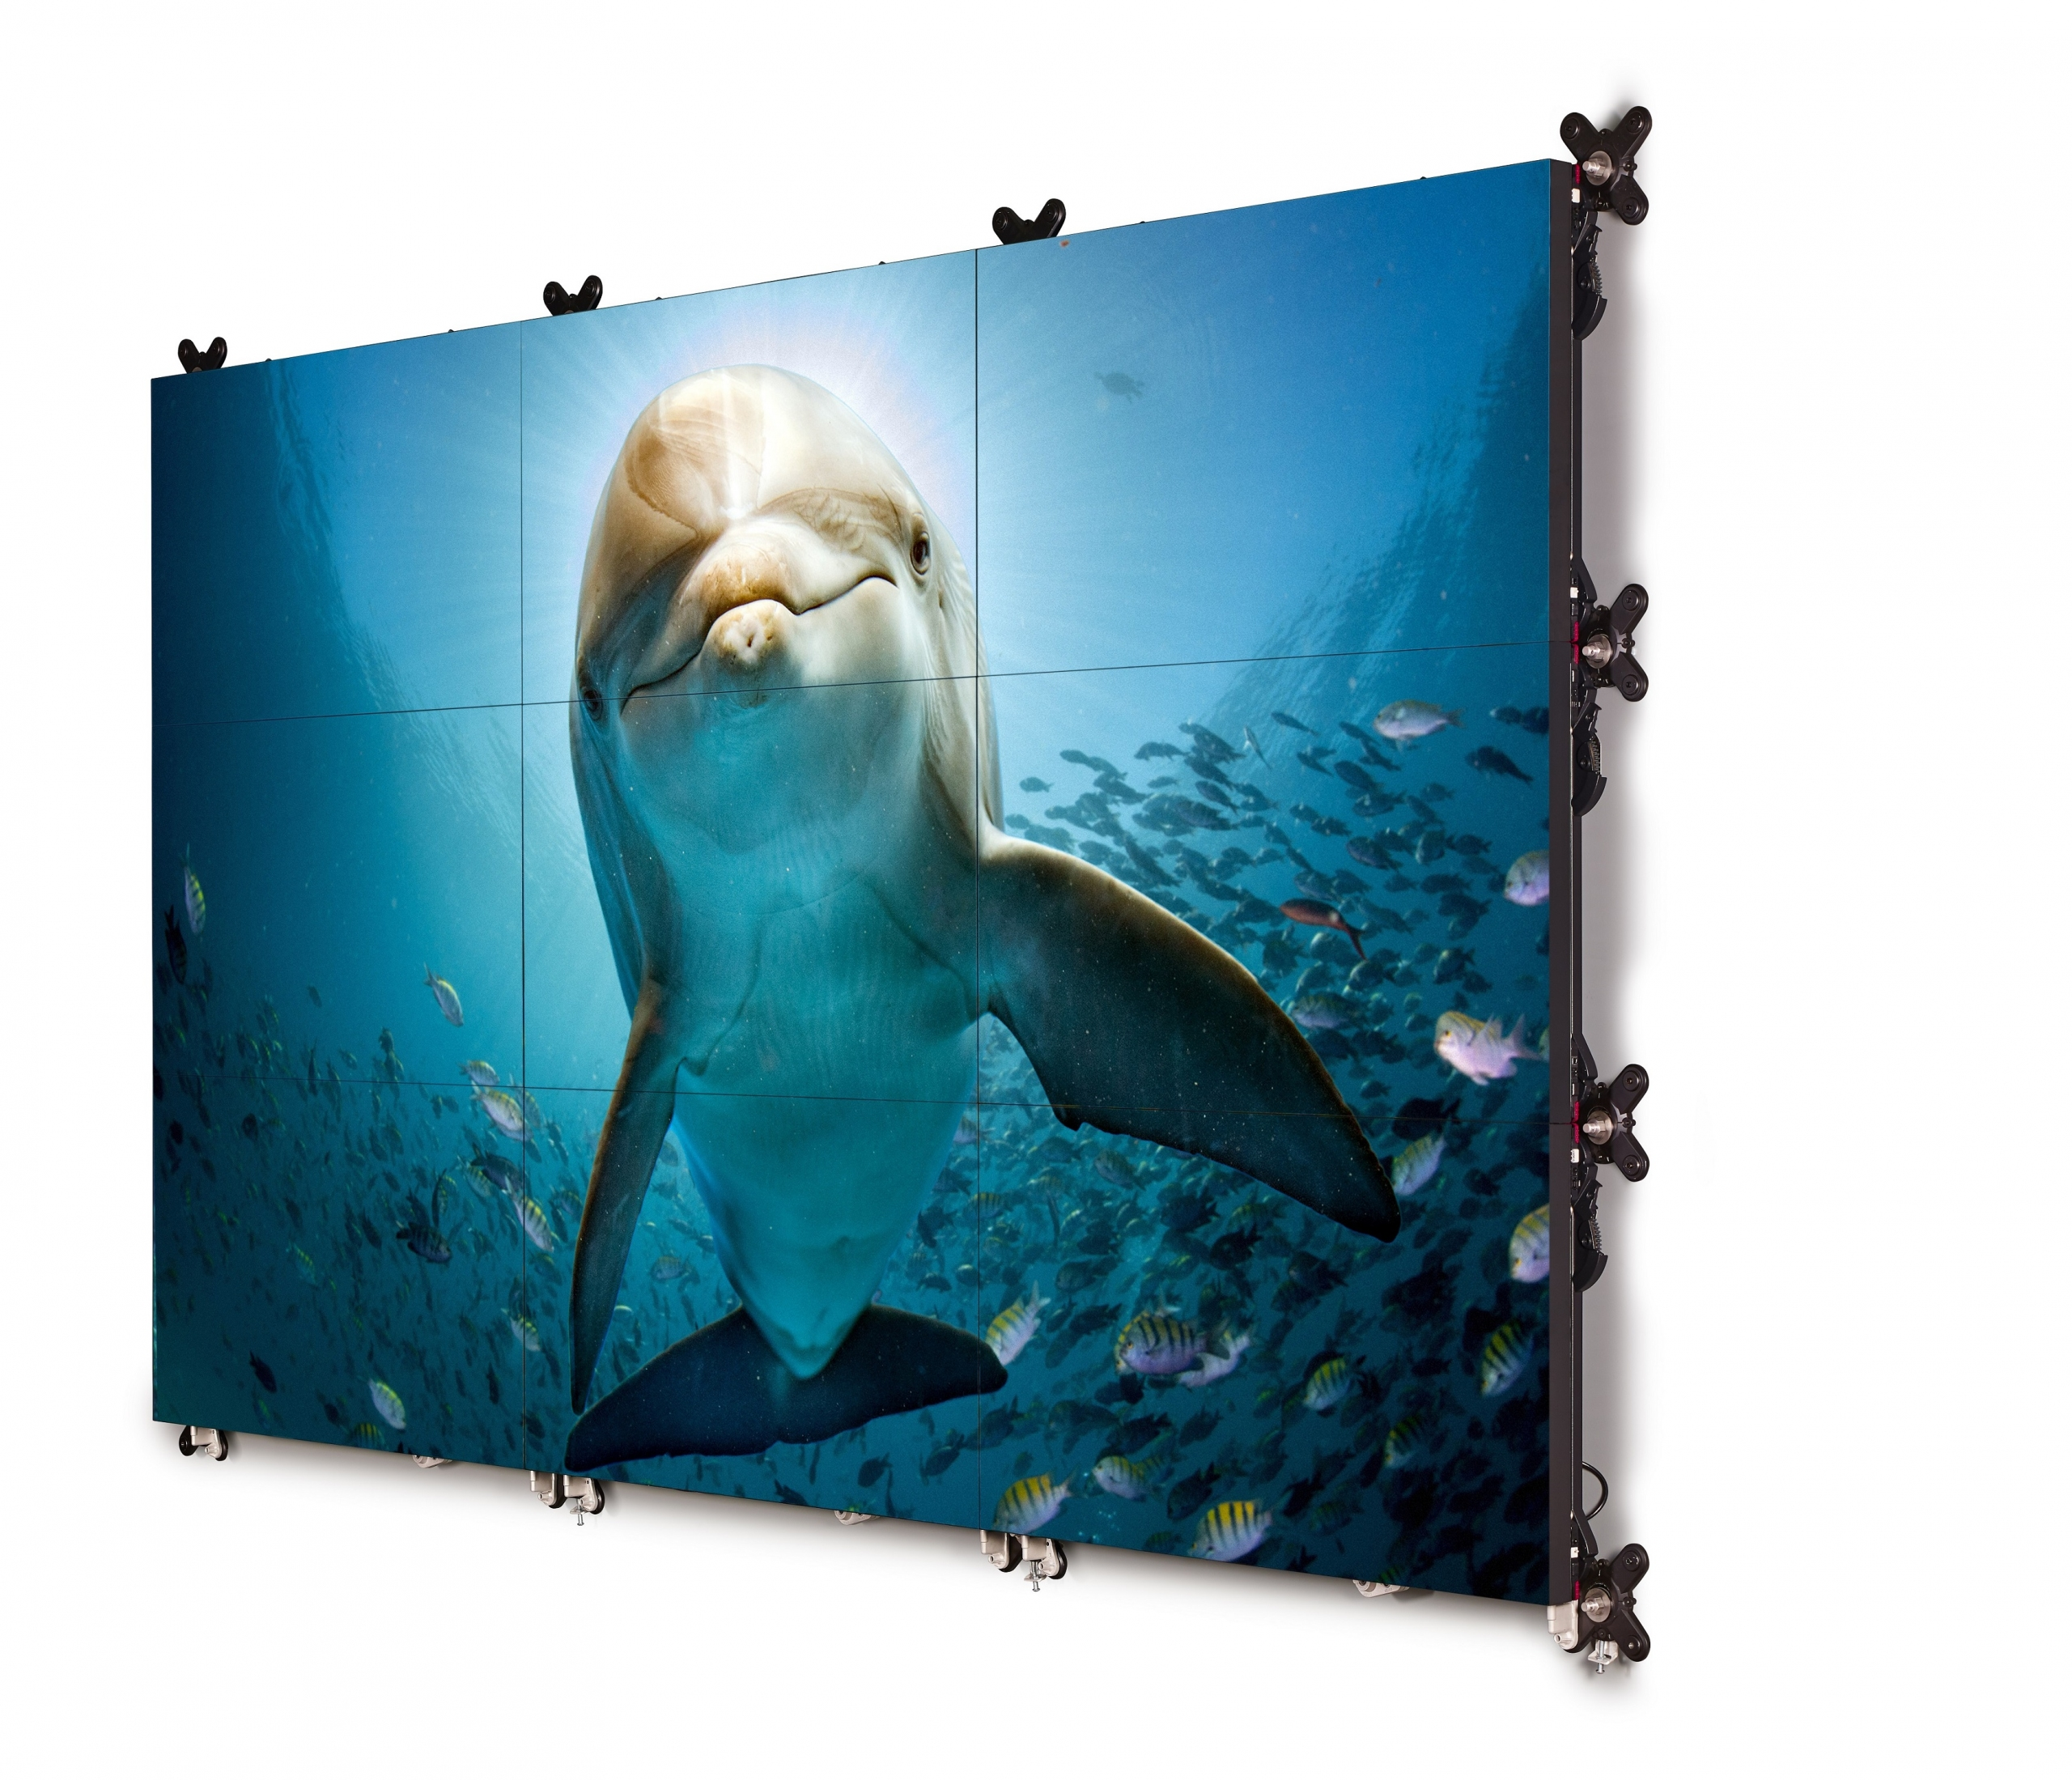 The new generation high-brightness Barco UniSee completes Barco's LCD video wall portfolio renewal